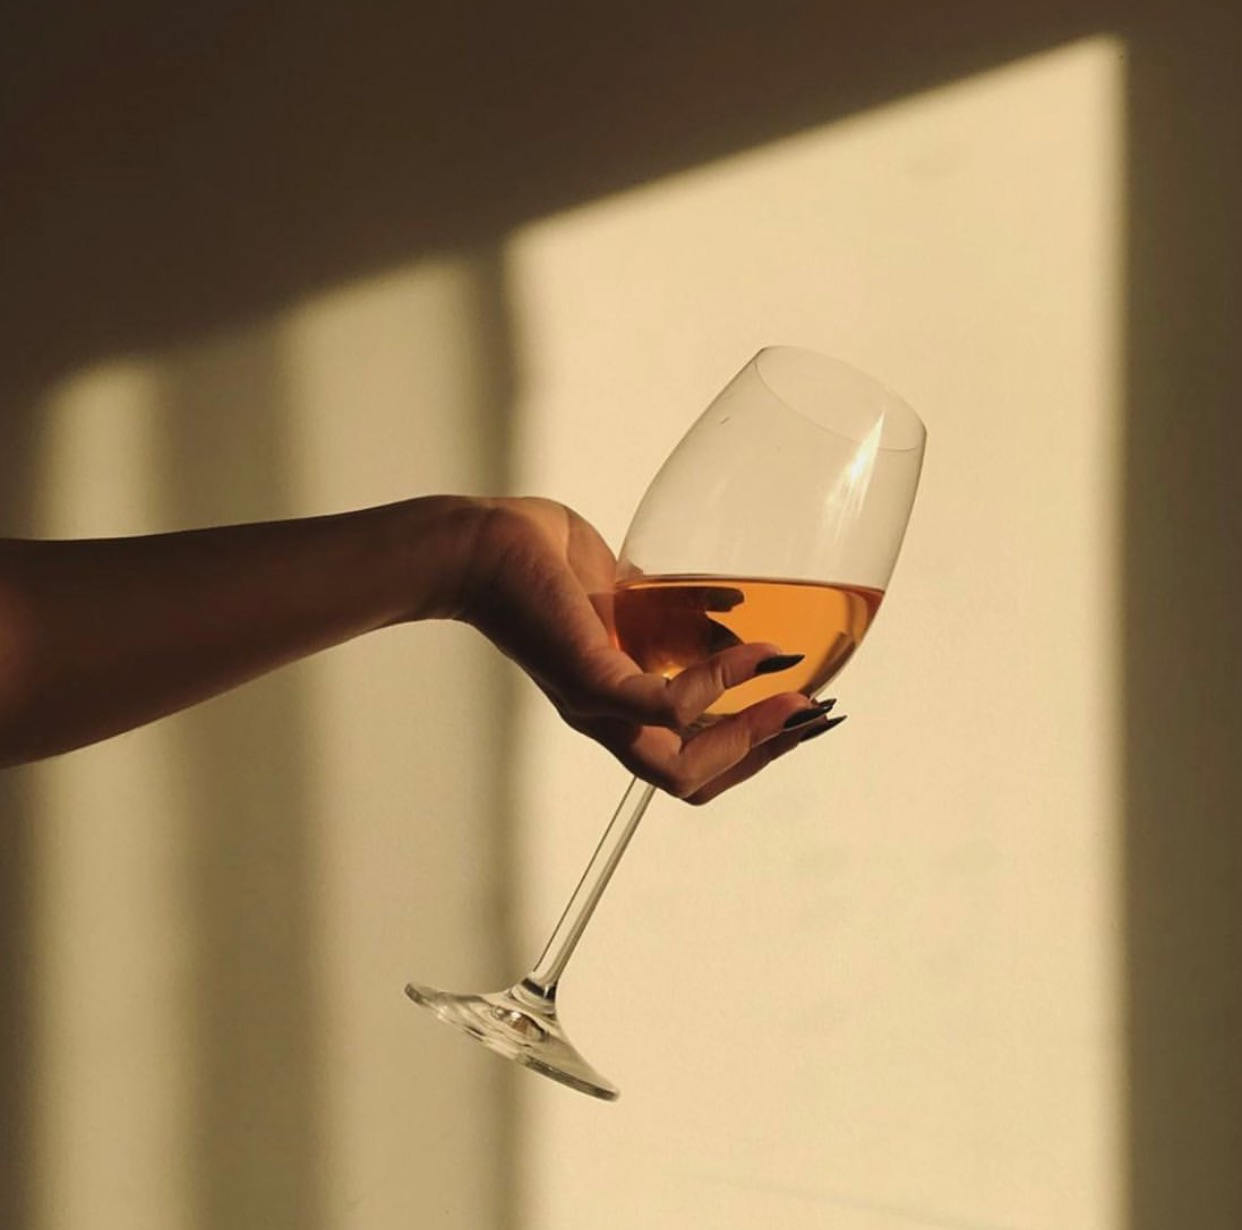 style and wine image